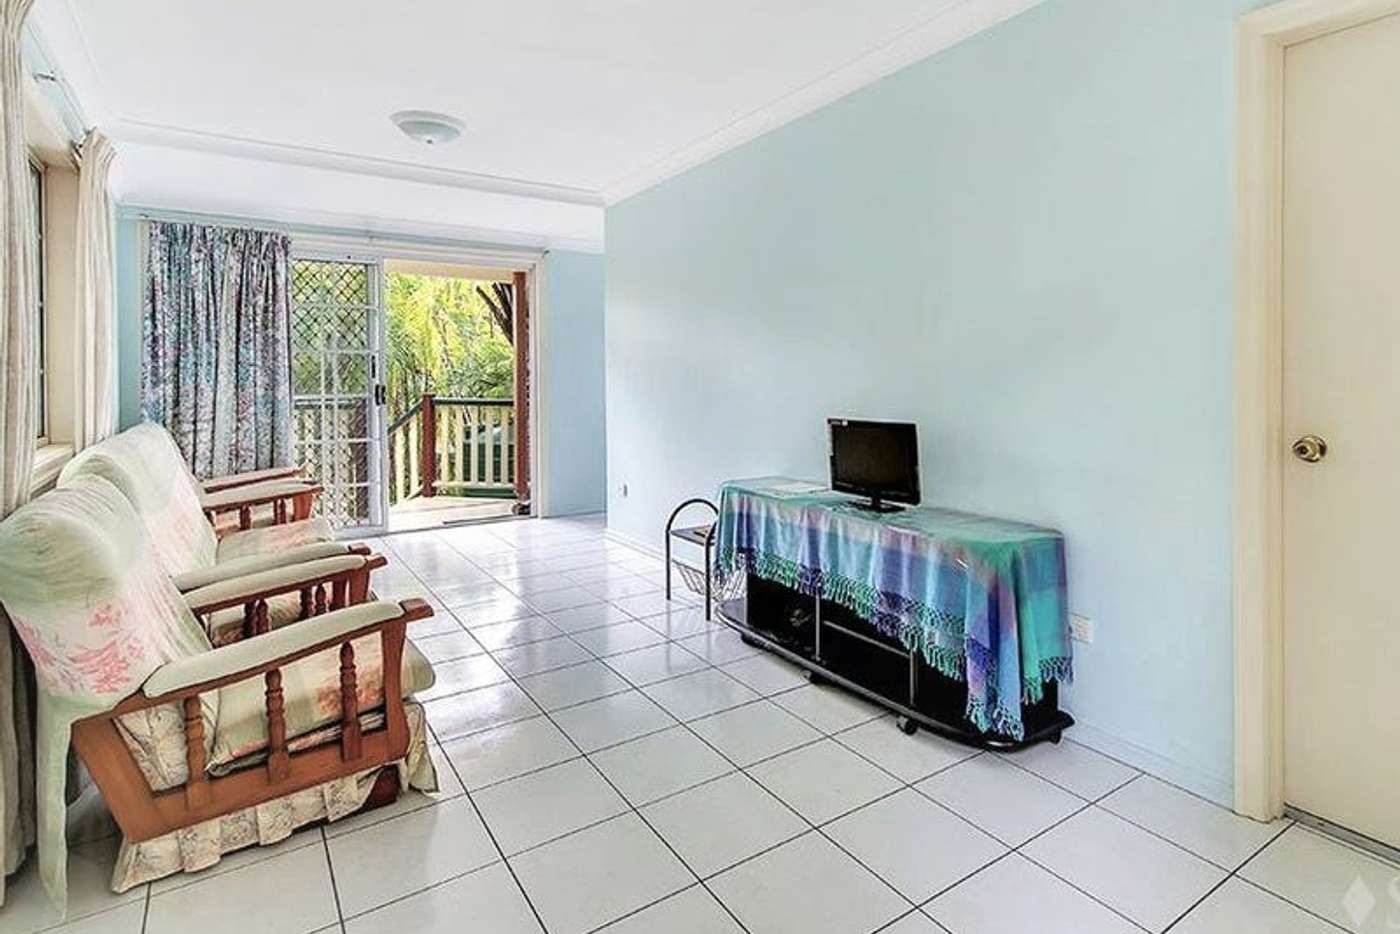 Fifth view of Homely house listing, Room 3/42 Macdonnell Street, Toowong QLD 4066